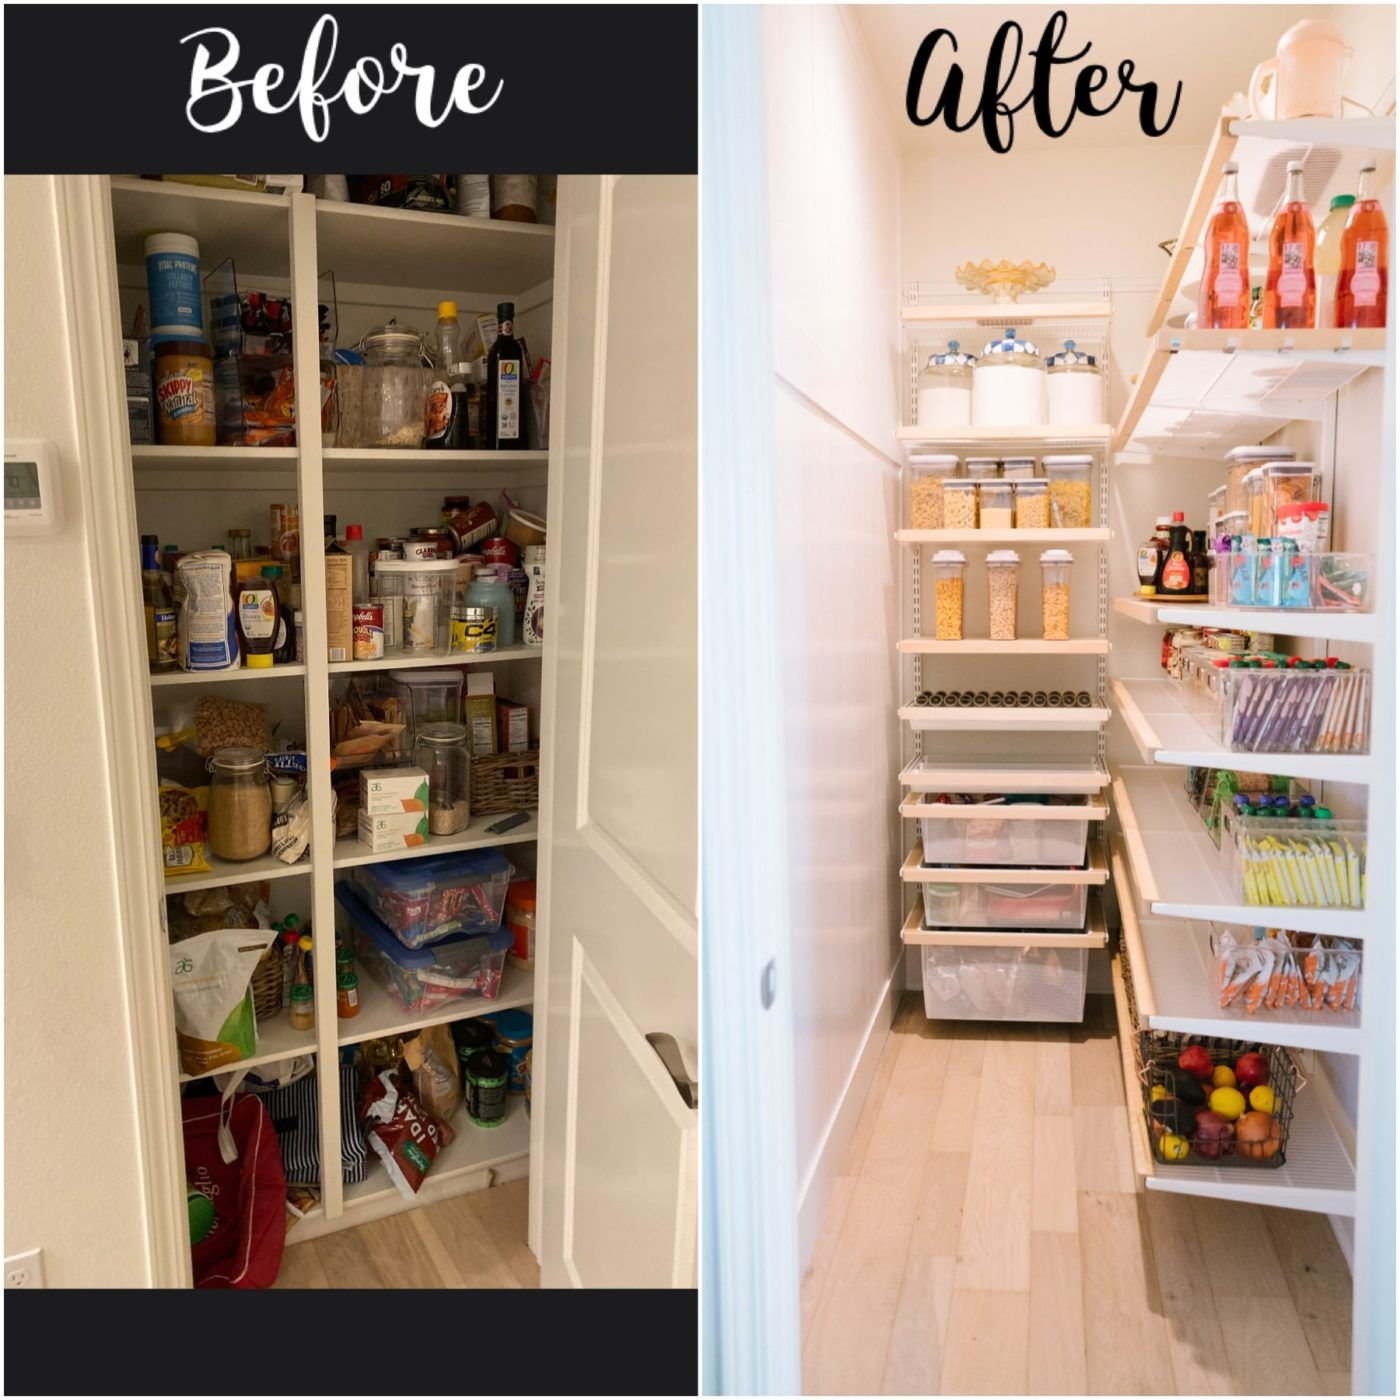 pantry re model before and after in 2020 small pantry closet container store small pantry on kitchen organization before and after id=71367